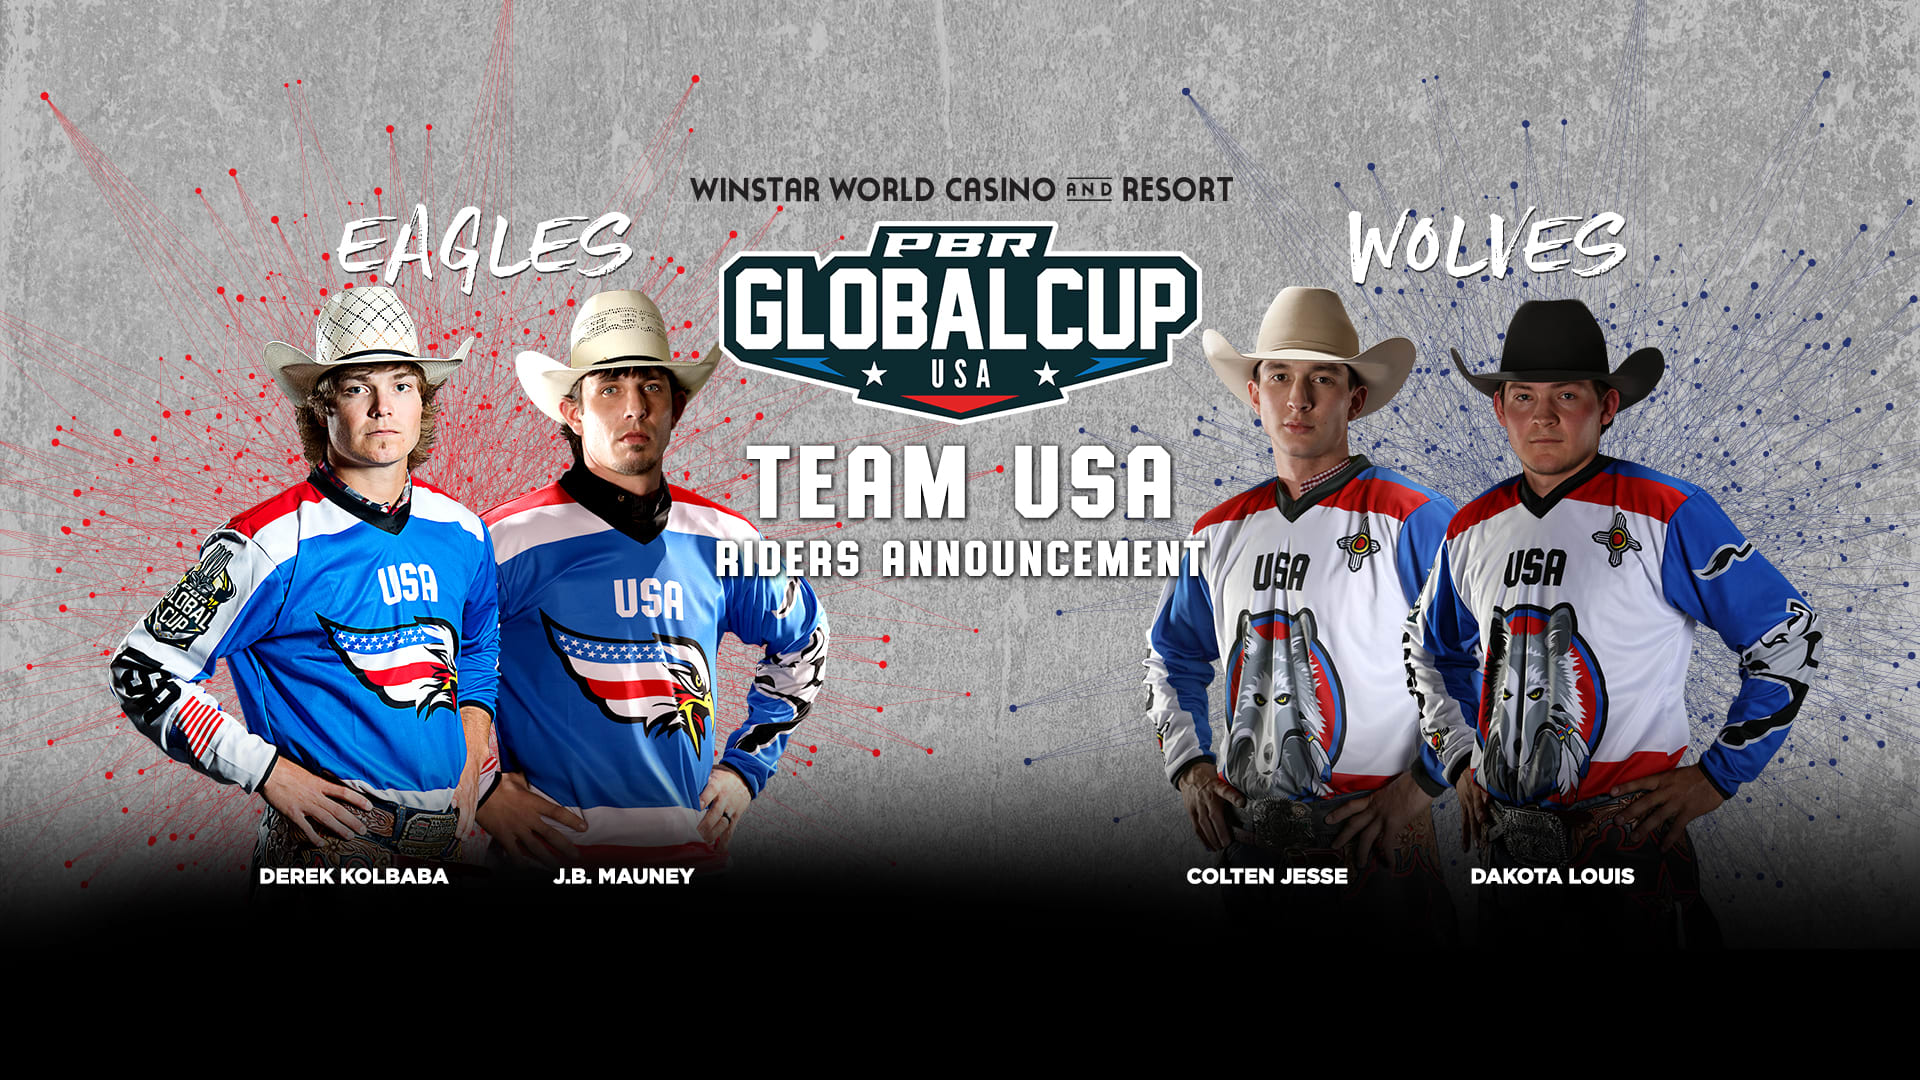 Two-time PBR World Champion J.B. Mauney selected to Team USA-Eagles at 2019 PBR Global Cup USA